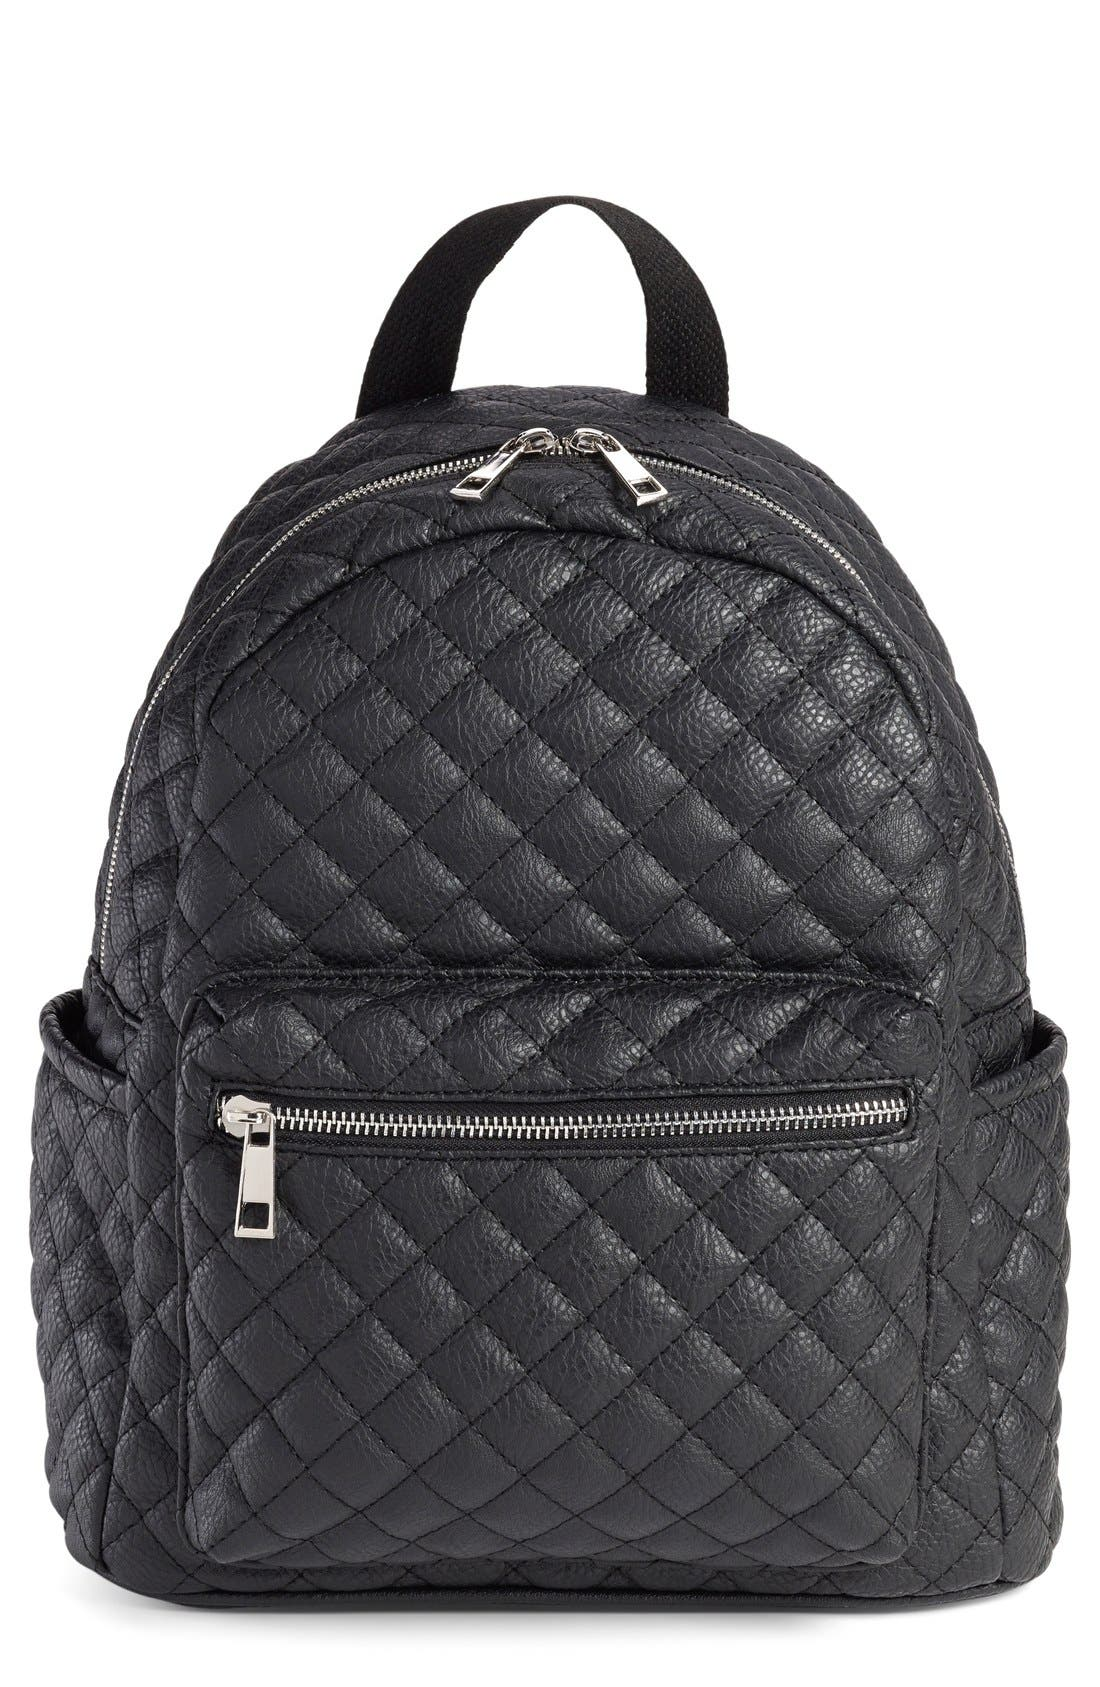 Faux Leather Quilted Backpack,                             Main thumbnail 1, color,